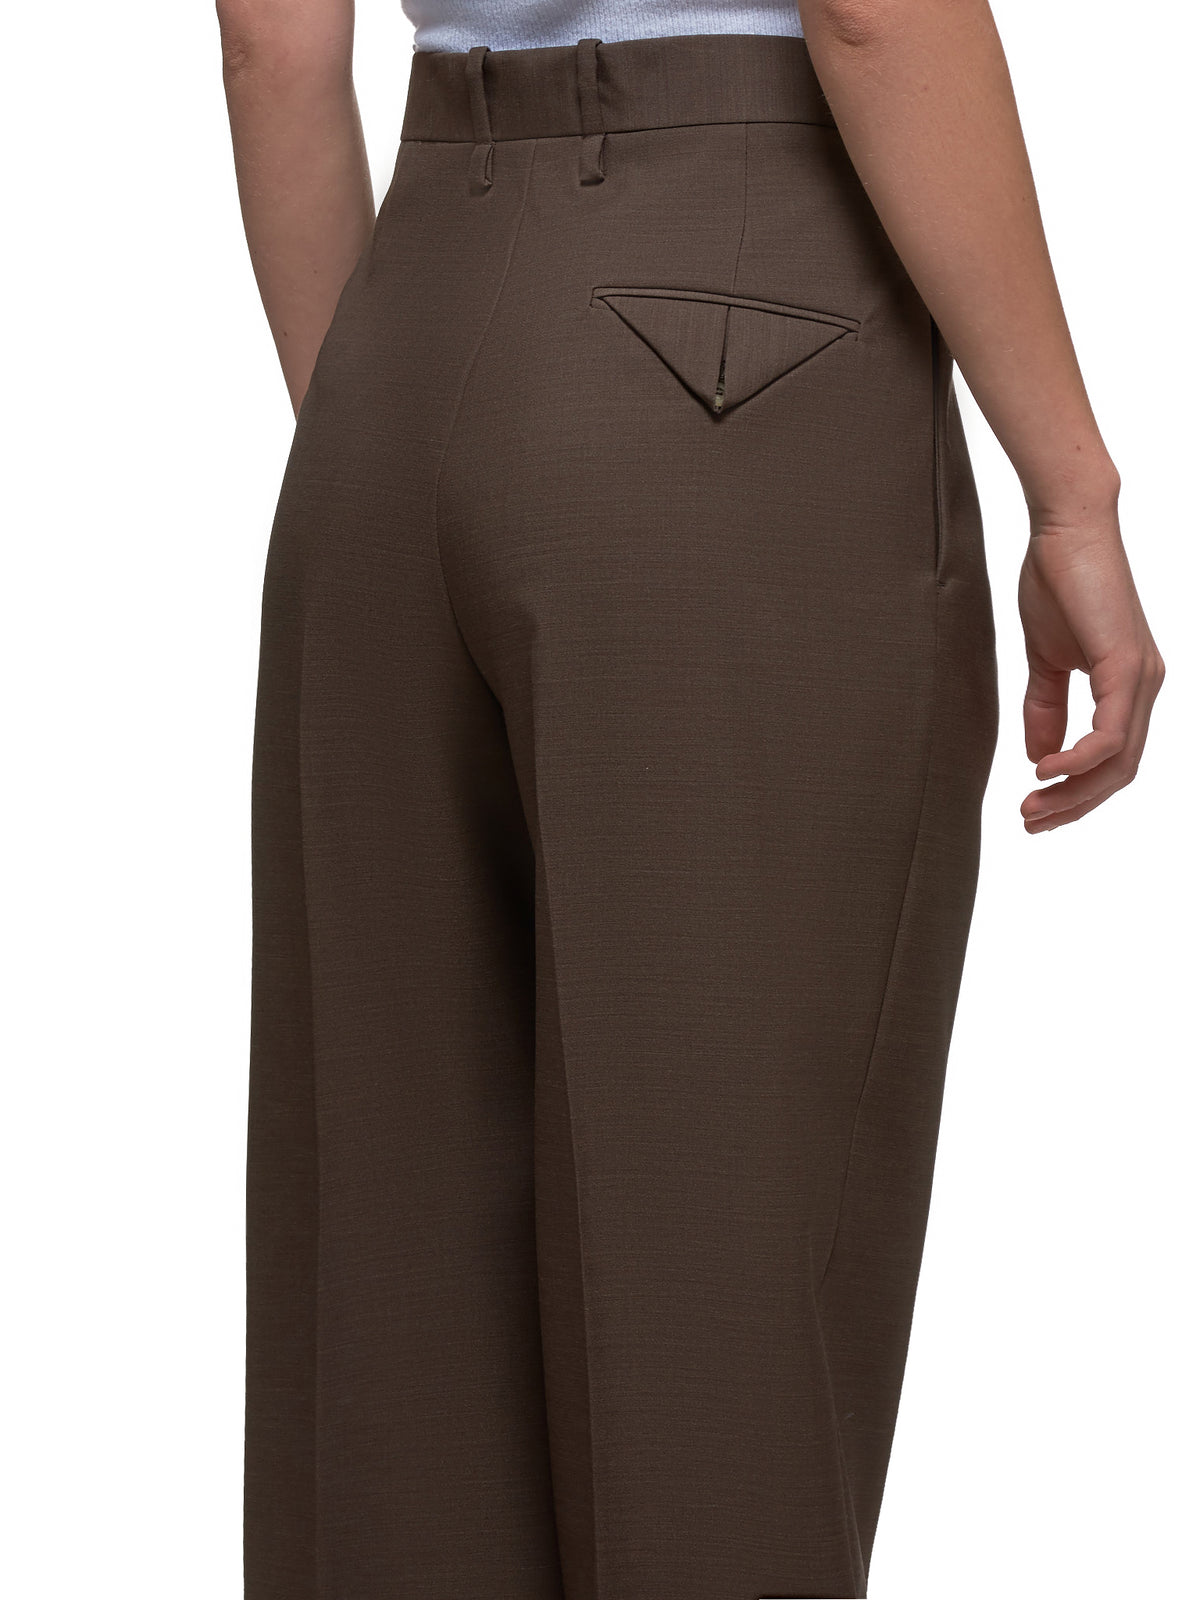 Bottega Veneta Pants - Hlorenzo Detail 2